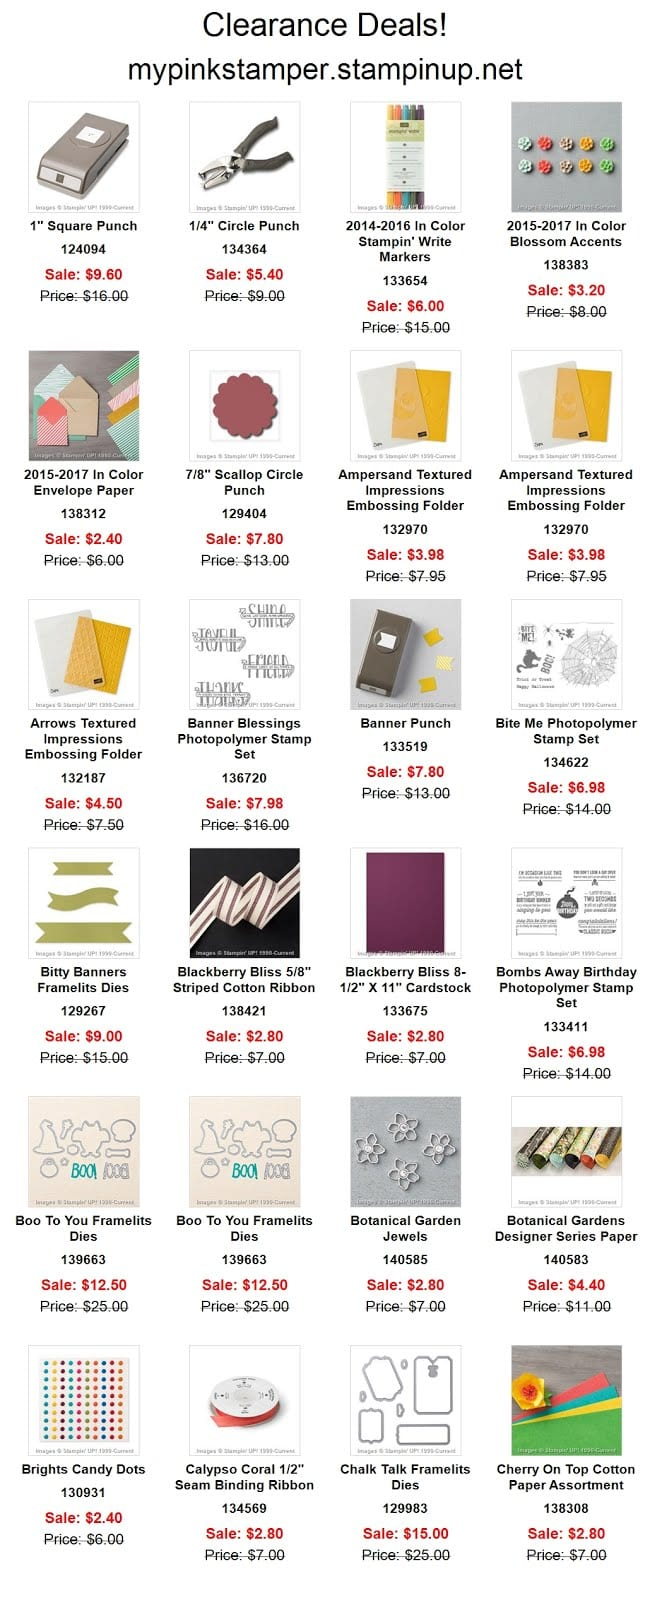 Stampin' Up! Clearance Specials ROCK!!!